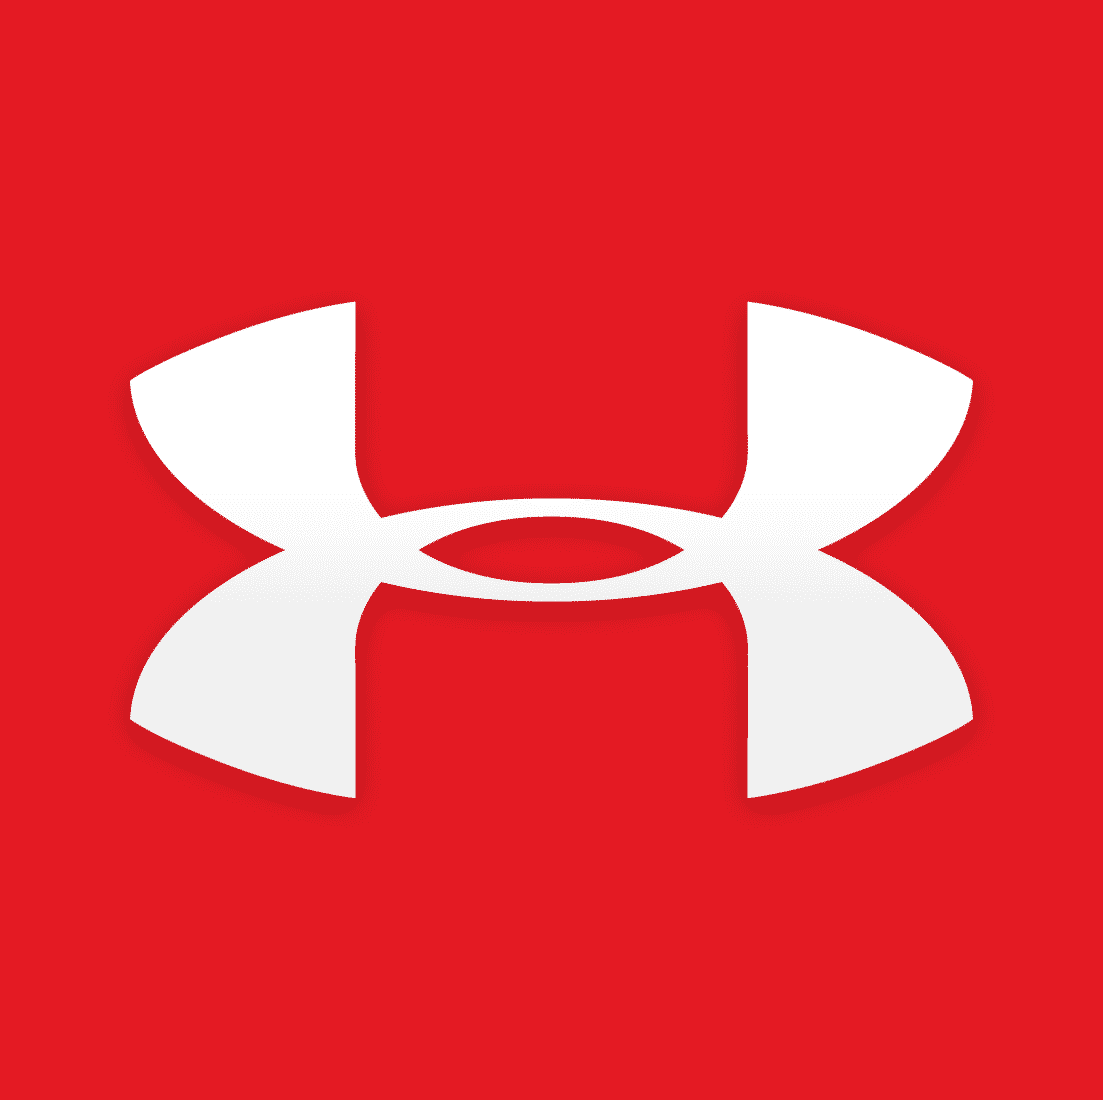 Ces Under Armour Health Box 247 Living With Loxone